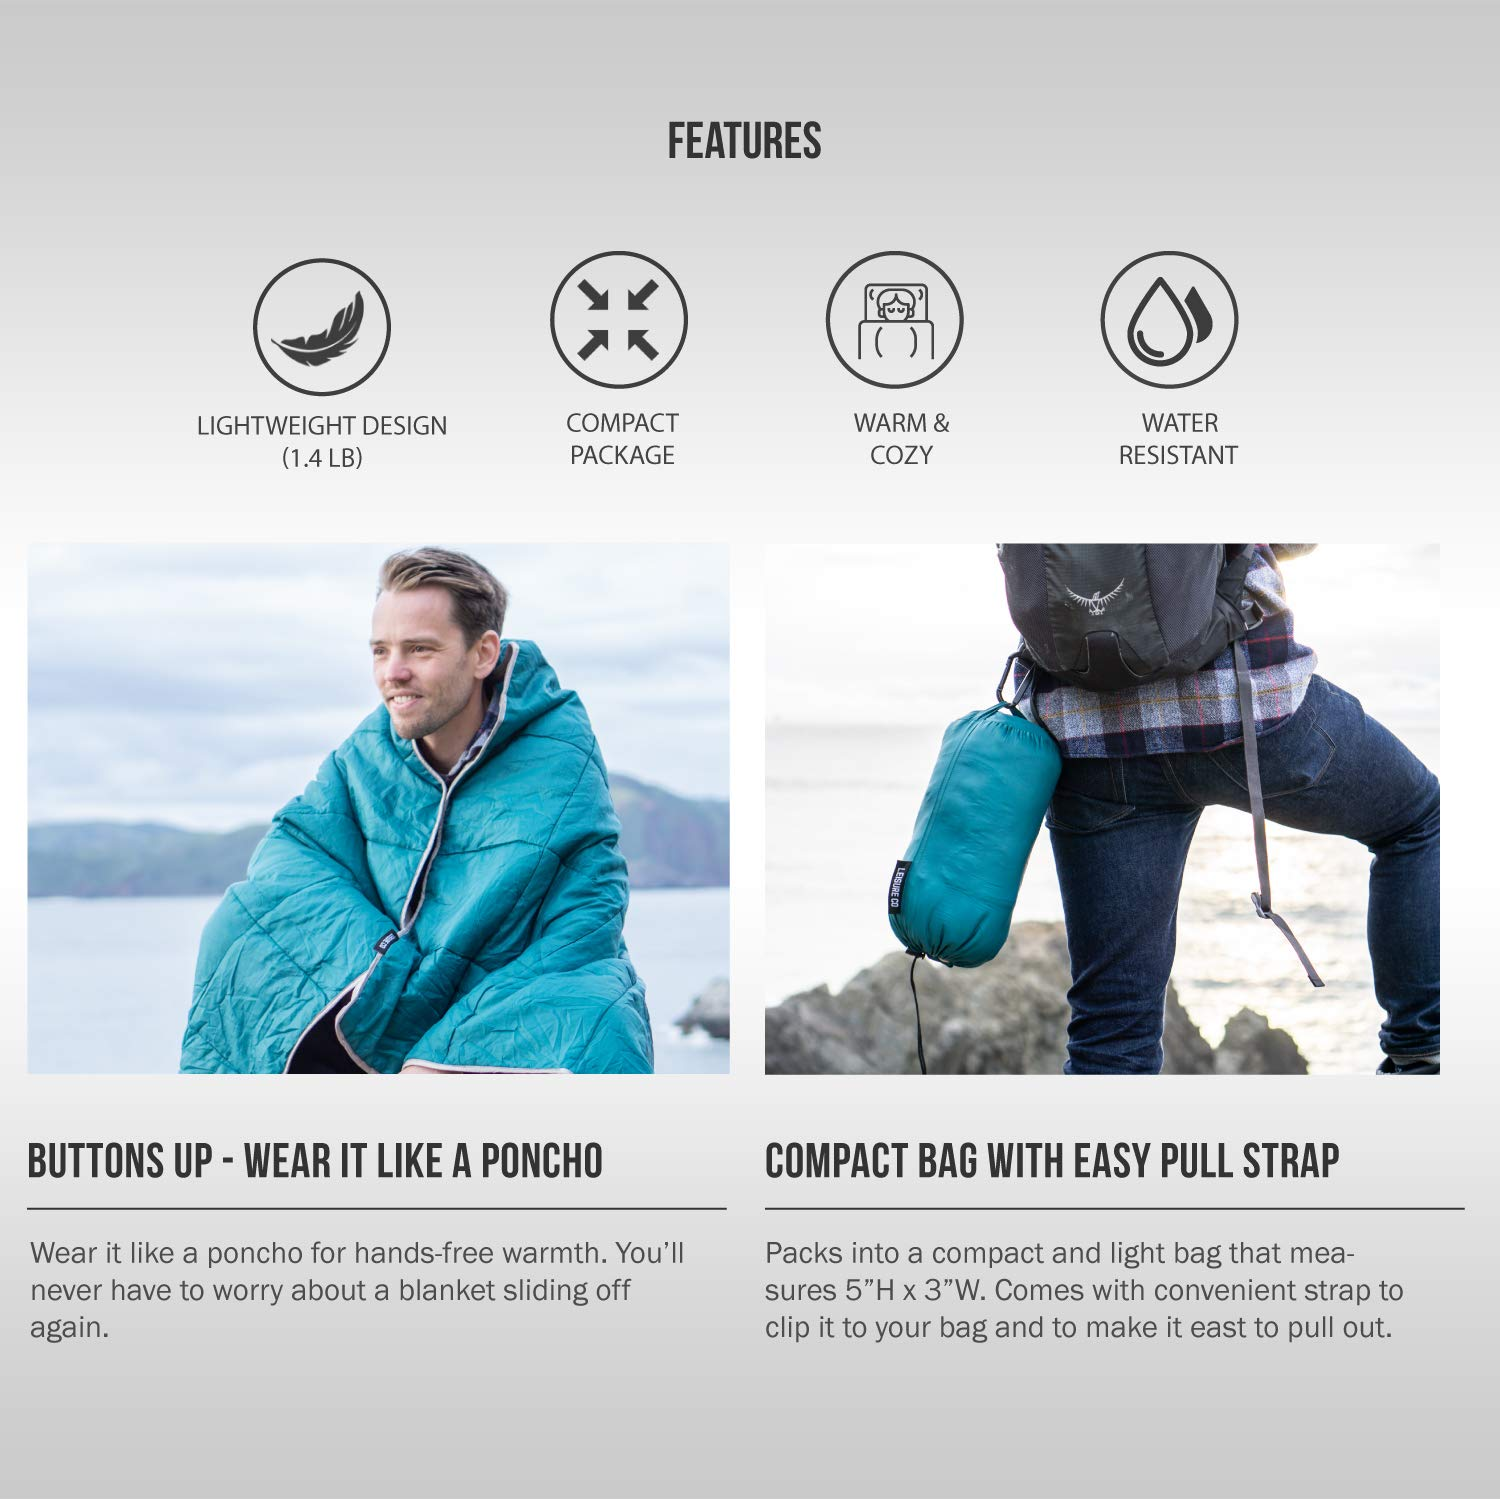 Leisure Co Ultra-Portable Outdoor Camping Blanket – Windproof, Warm, Lightweight and Compact Packable Blanket – Perfect for Camp Trips, Stadium Games, Travel and Picnics